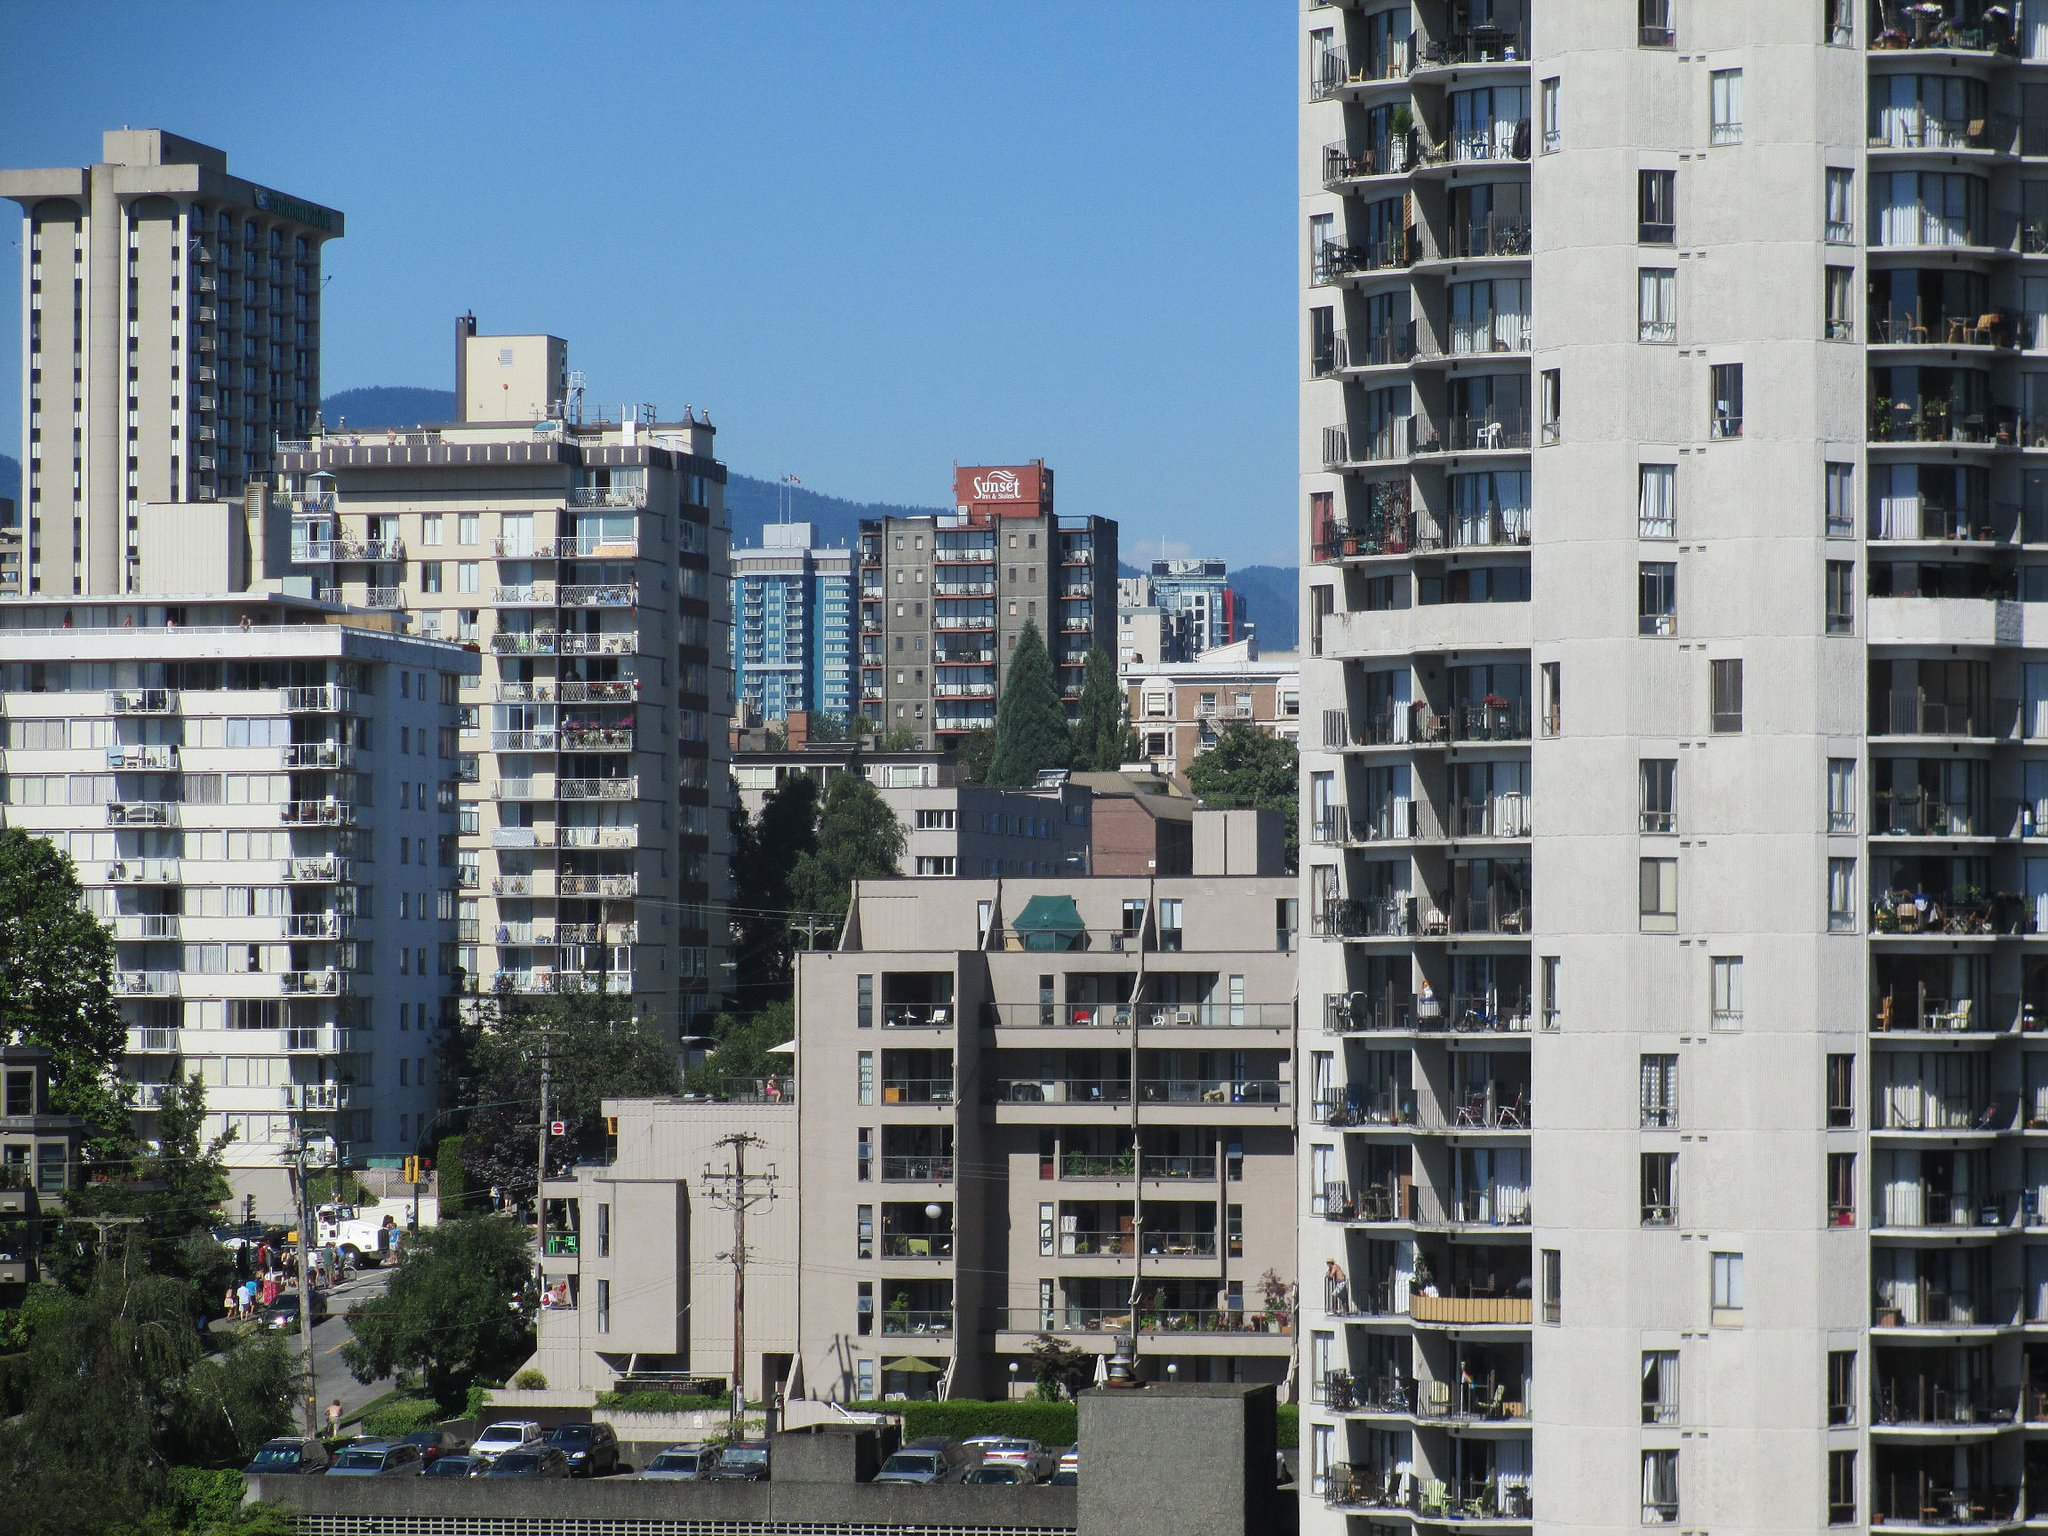 Apartment buildings in Vancouver, B.C. (Robert Ashworth/Flickr)